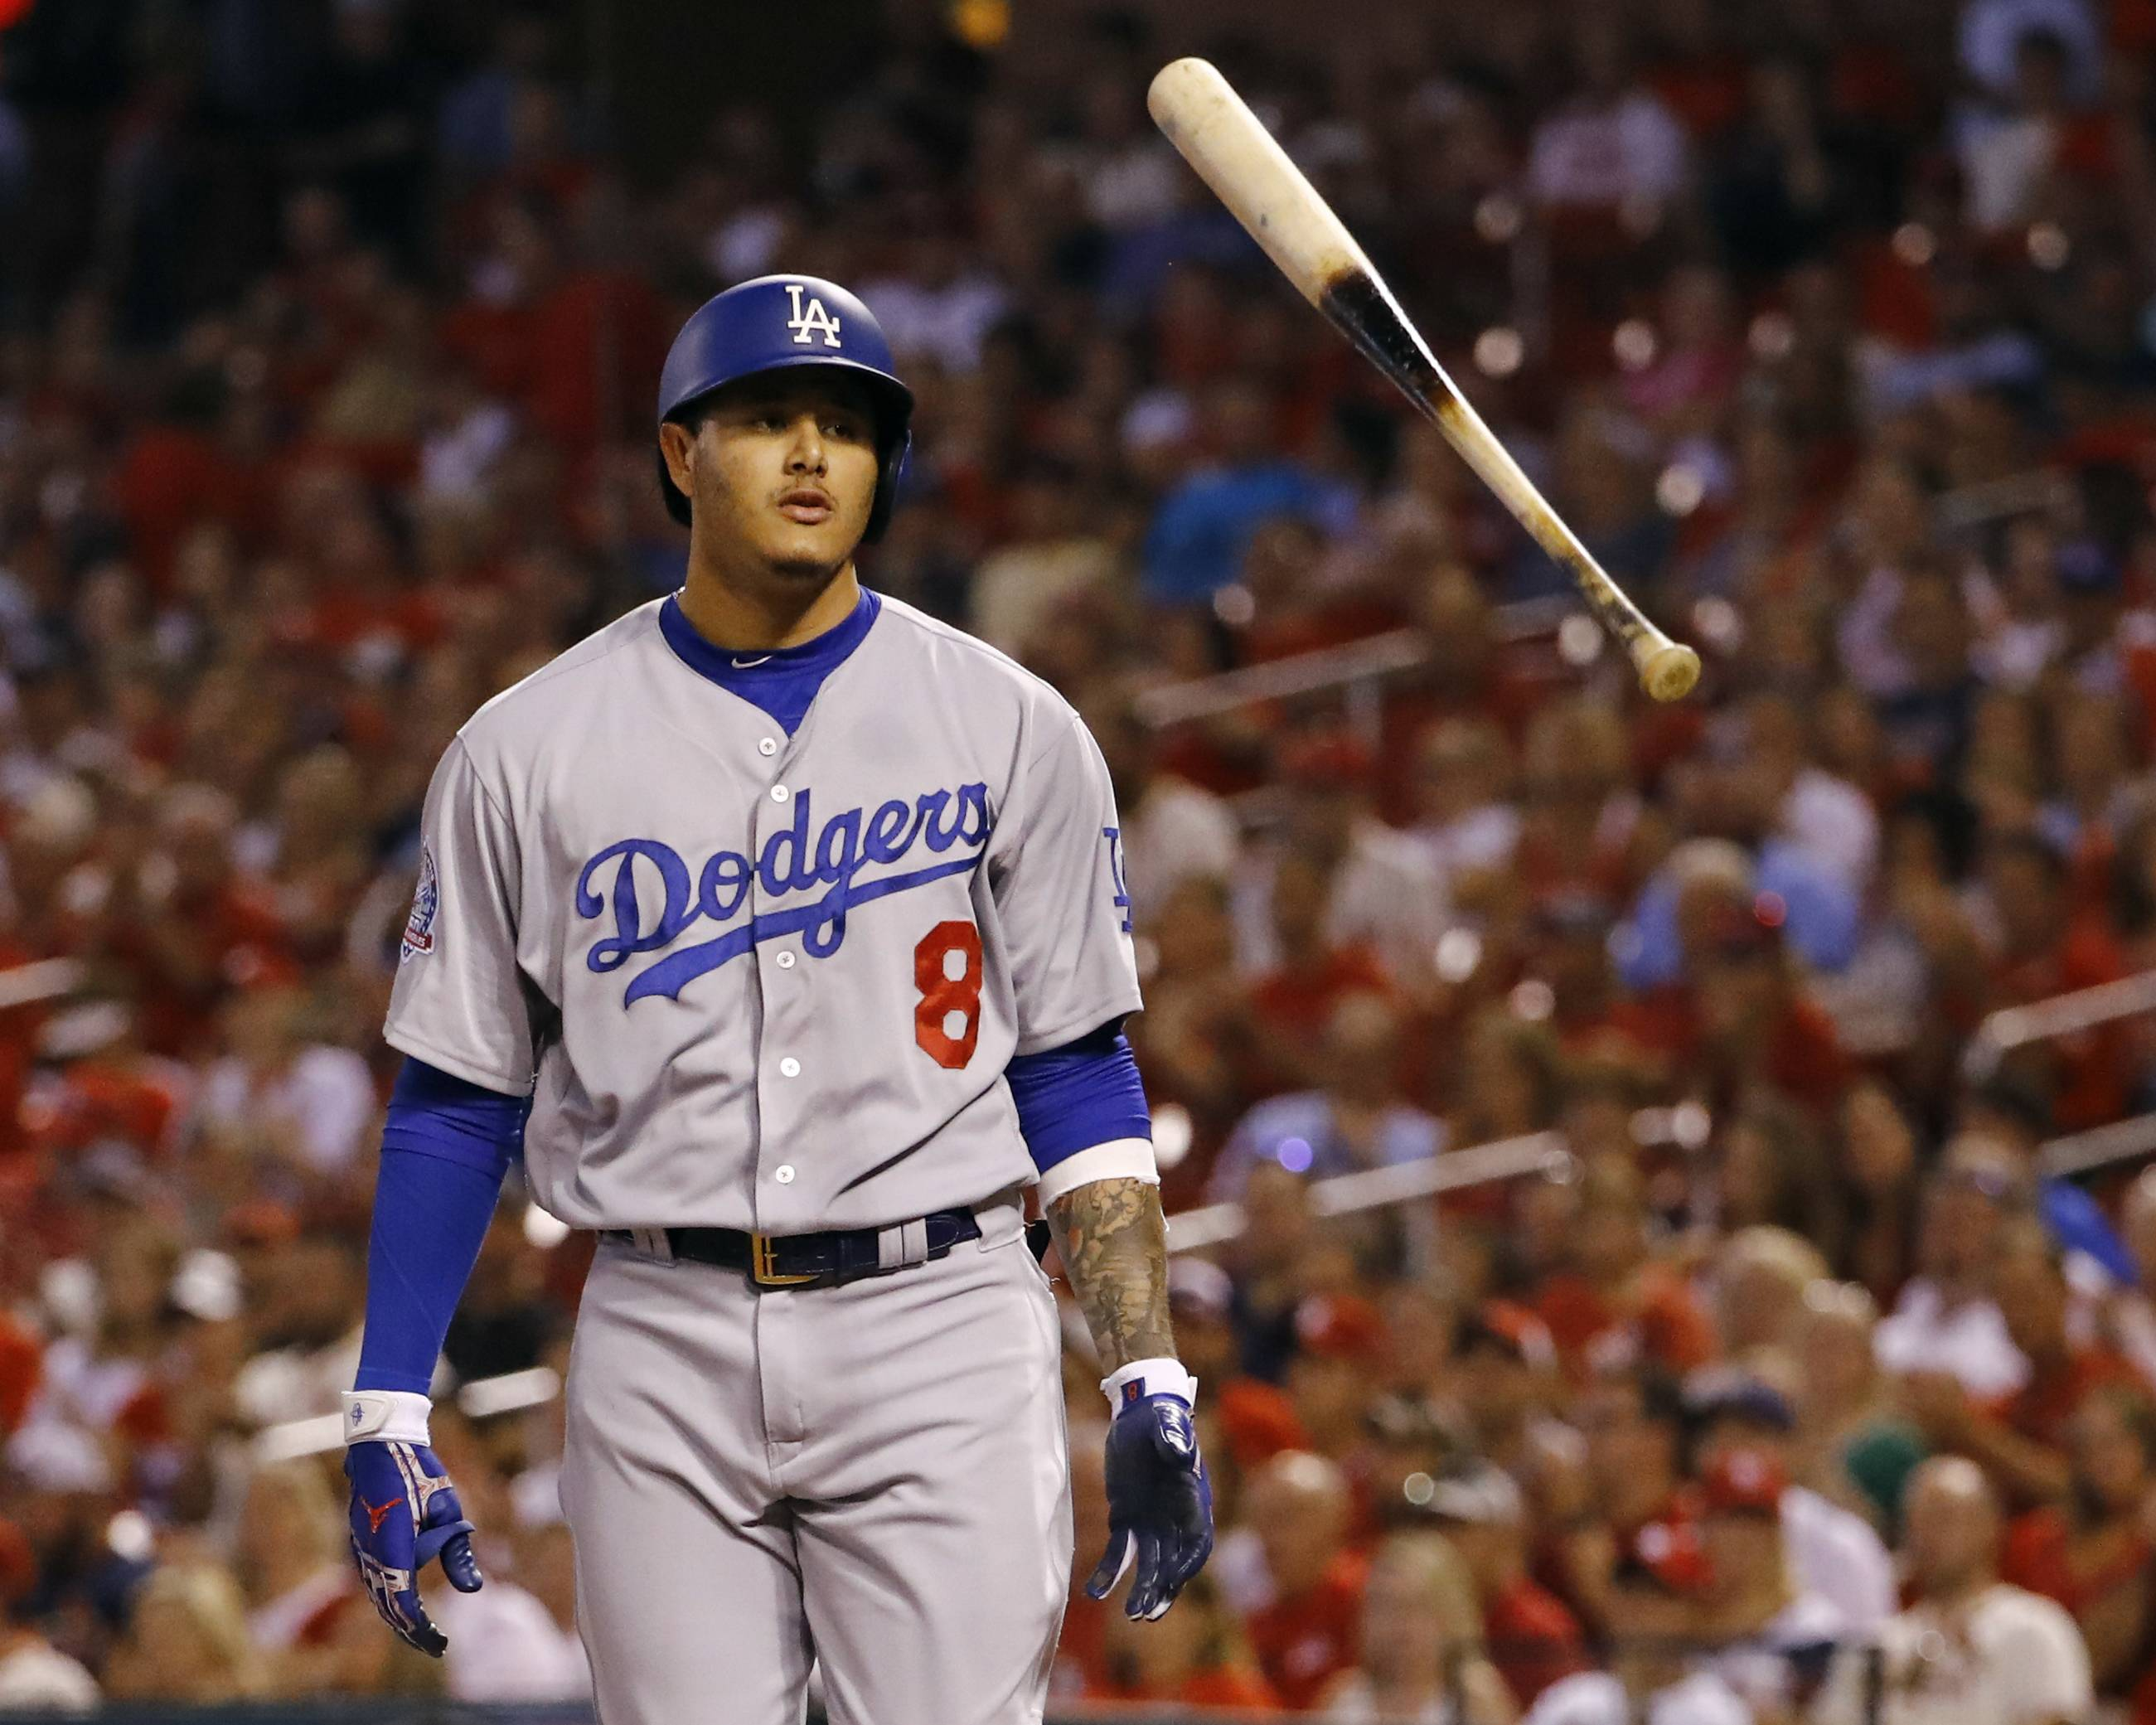 A person familiar with the negotiations tells The Associated Press that All-Star infielder Manny Machado has agreed to a $300 million, 10-year deal with the rebuilding San Diego Padres, the biggest contract ever for a free agent.